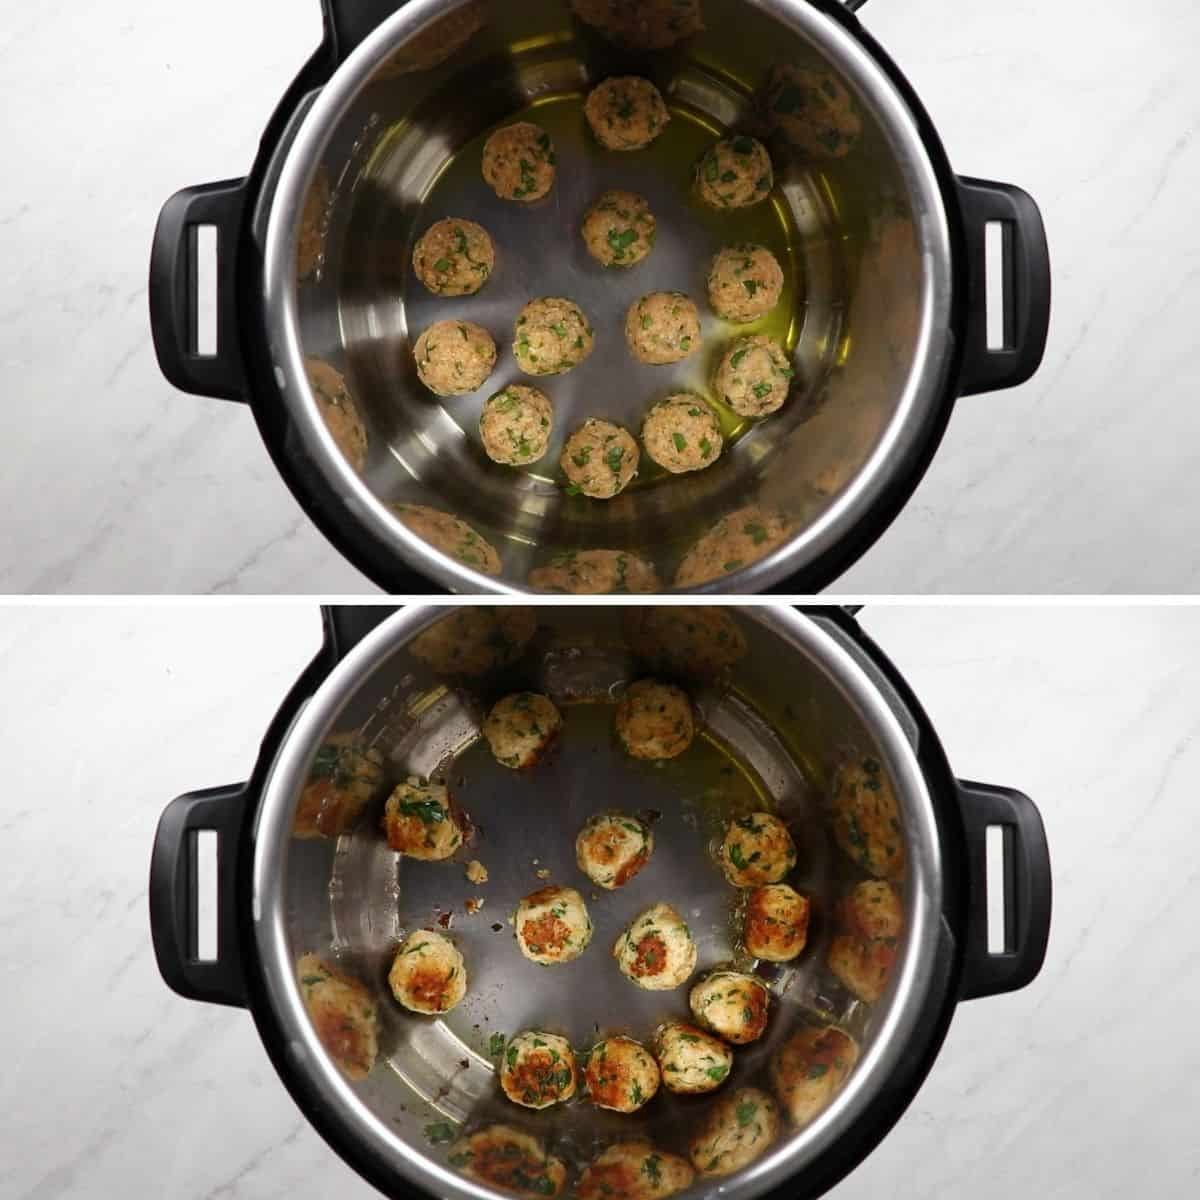 Process photos of browning meetballs in a pressure cooker.